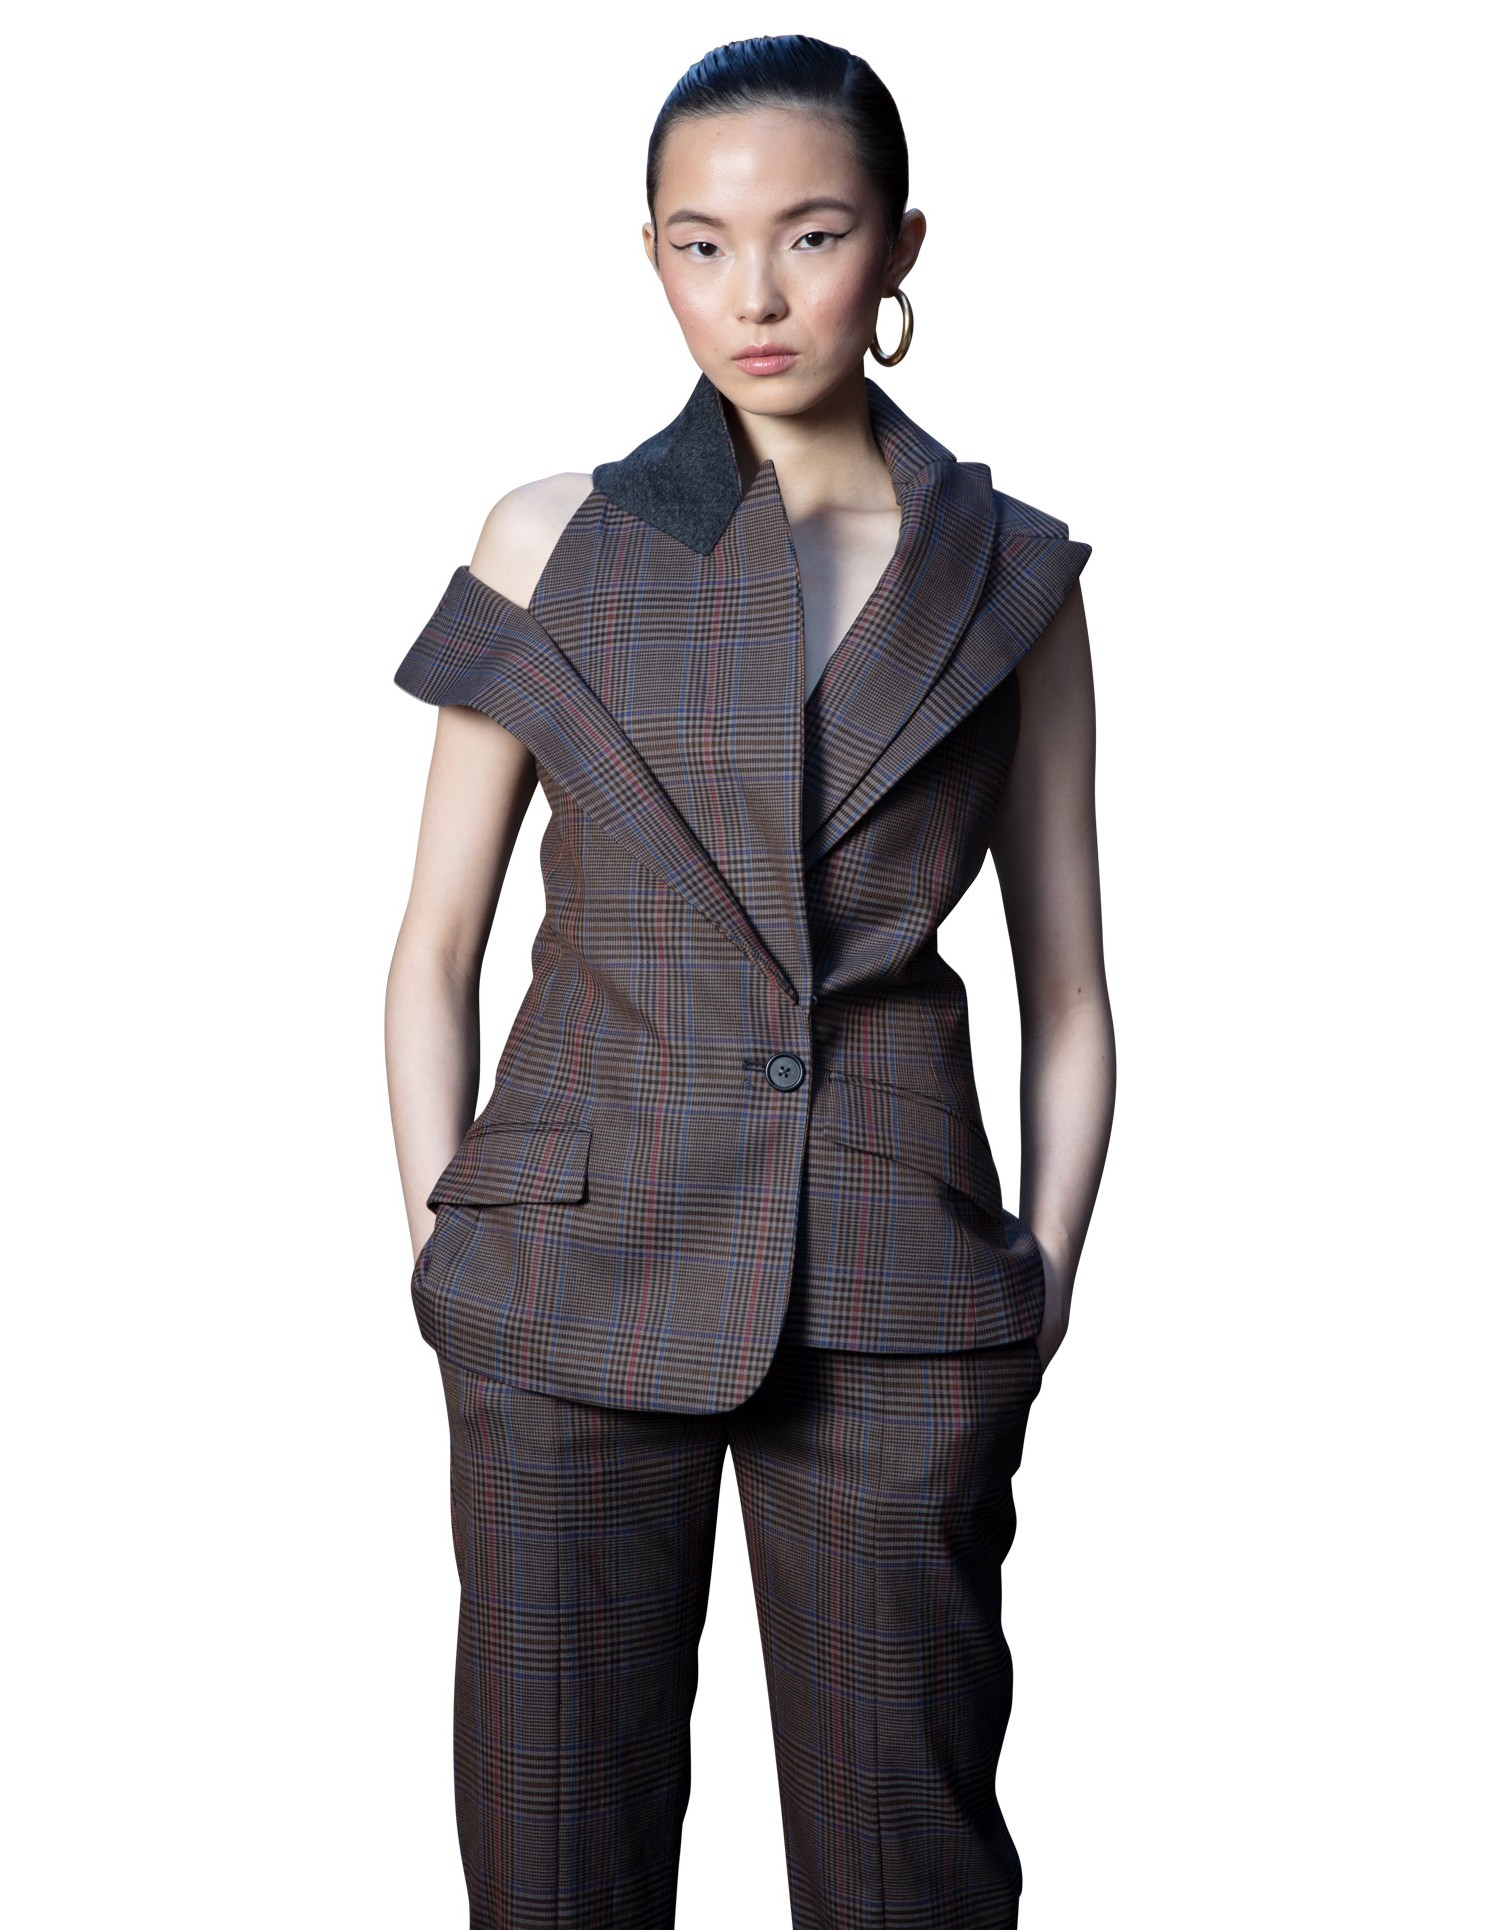 MONSE Plaid Double Lapel Vest in Tan Multi on Model Front Detail View